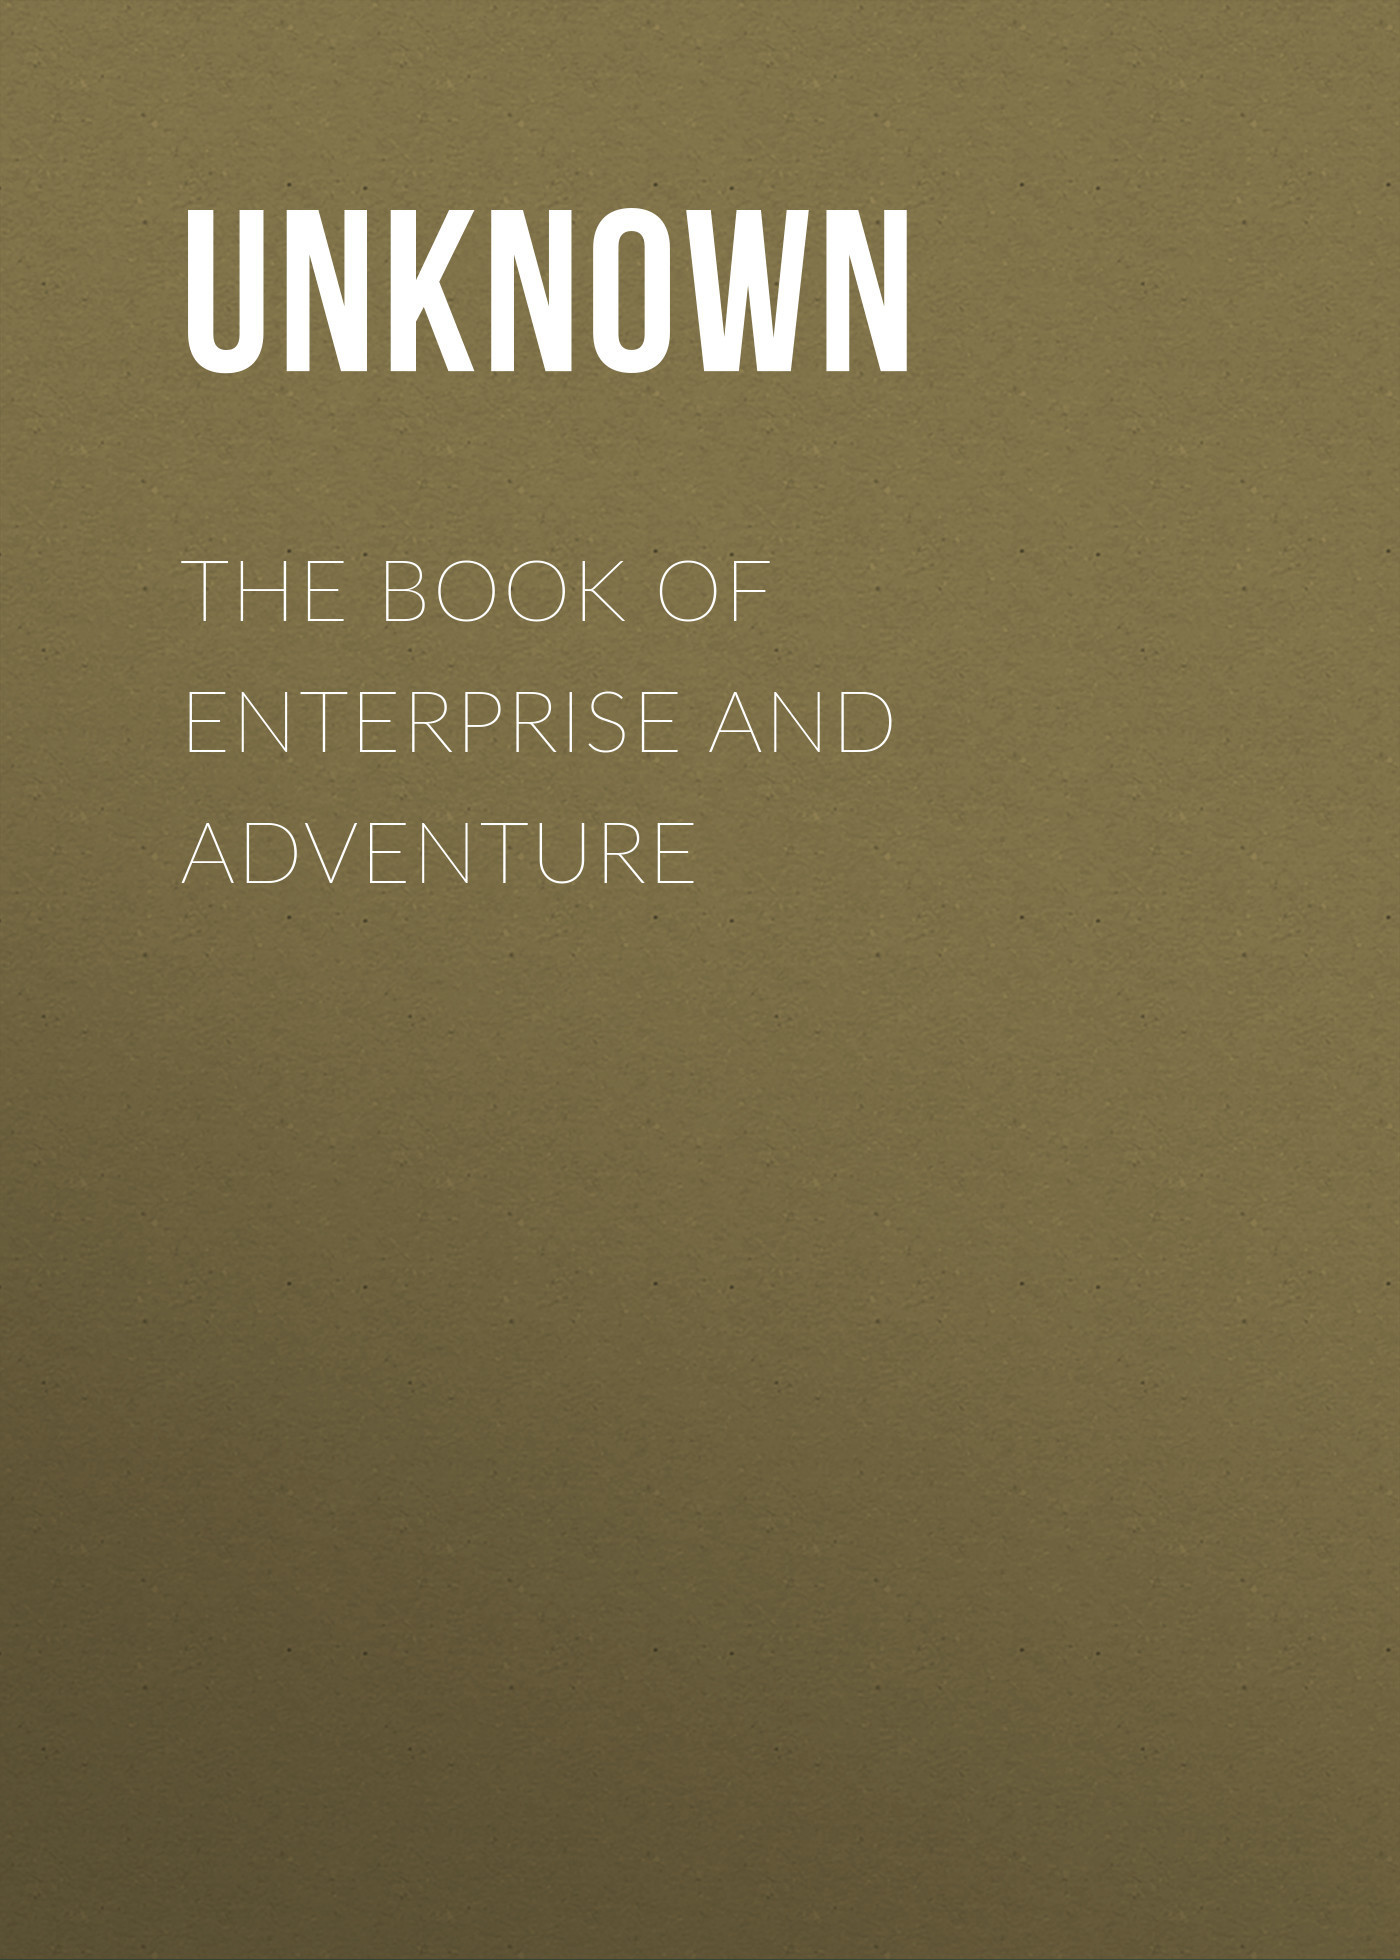 Unknown The Book of Enterprise and Adventure